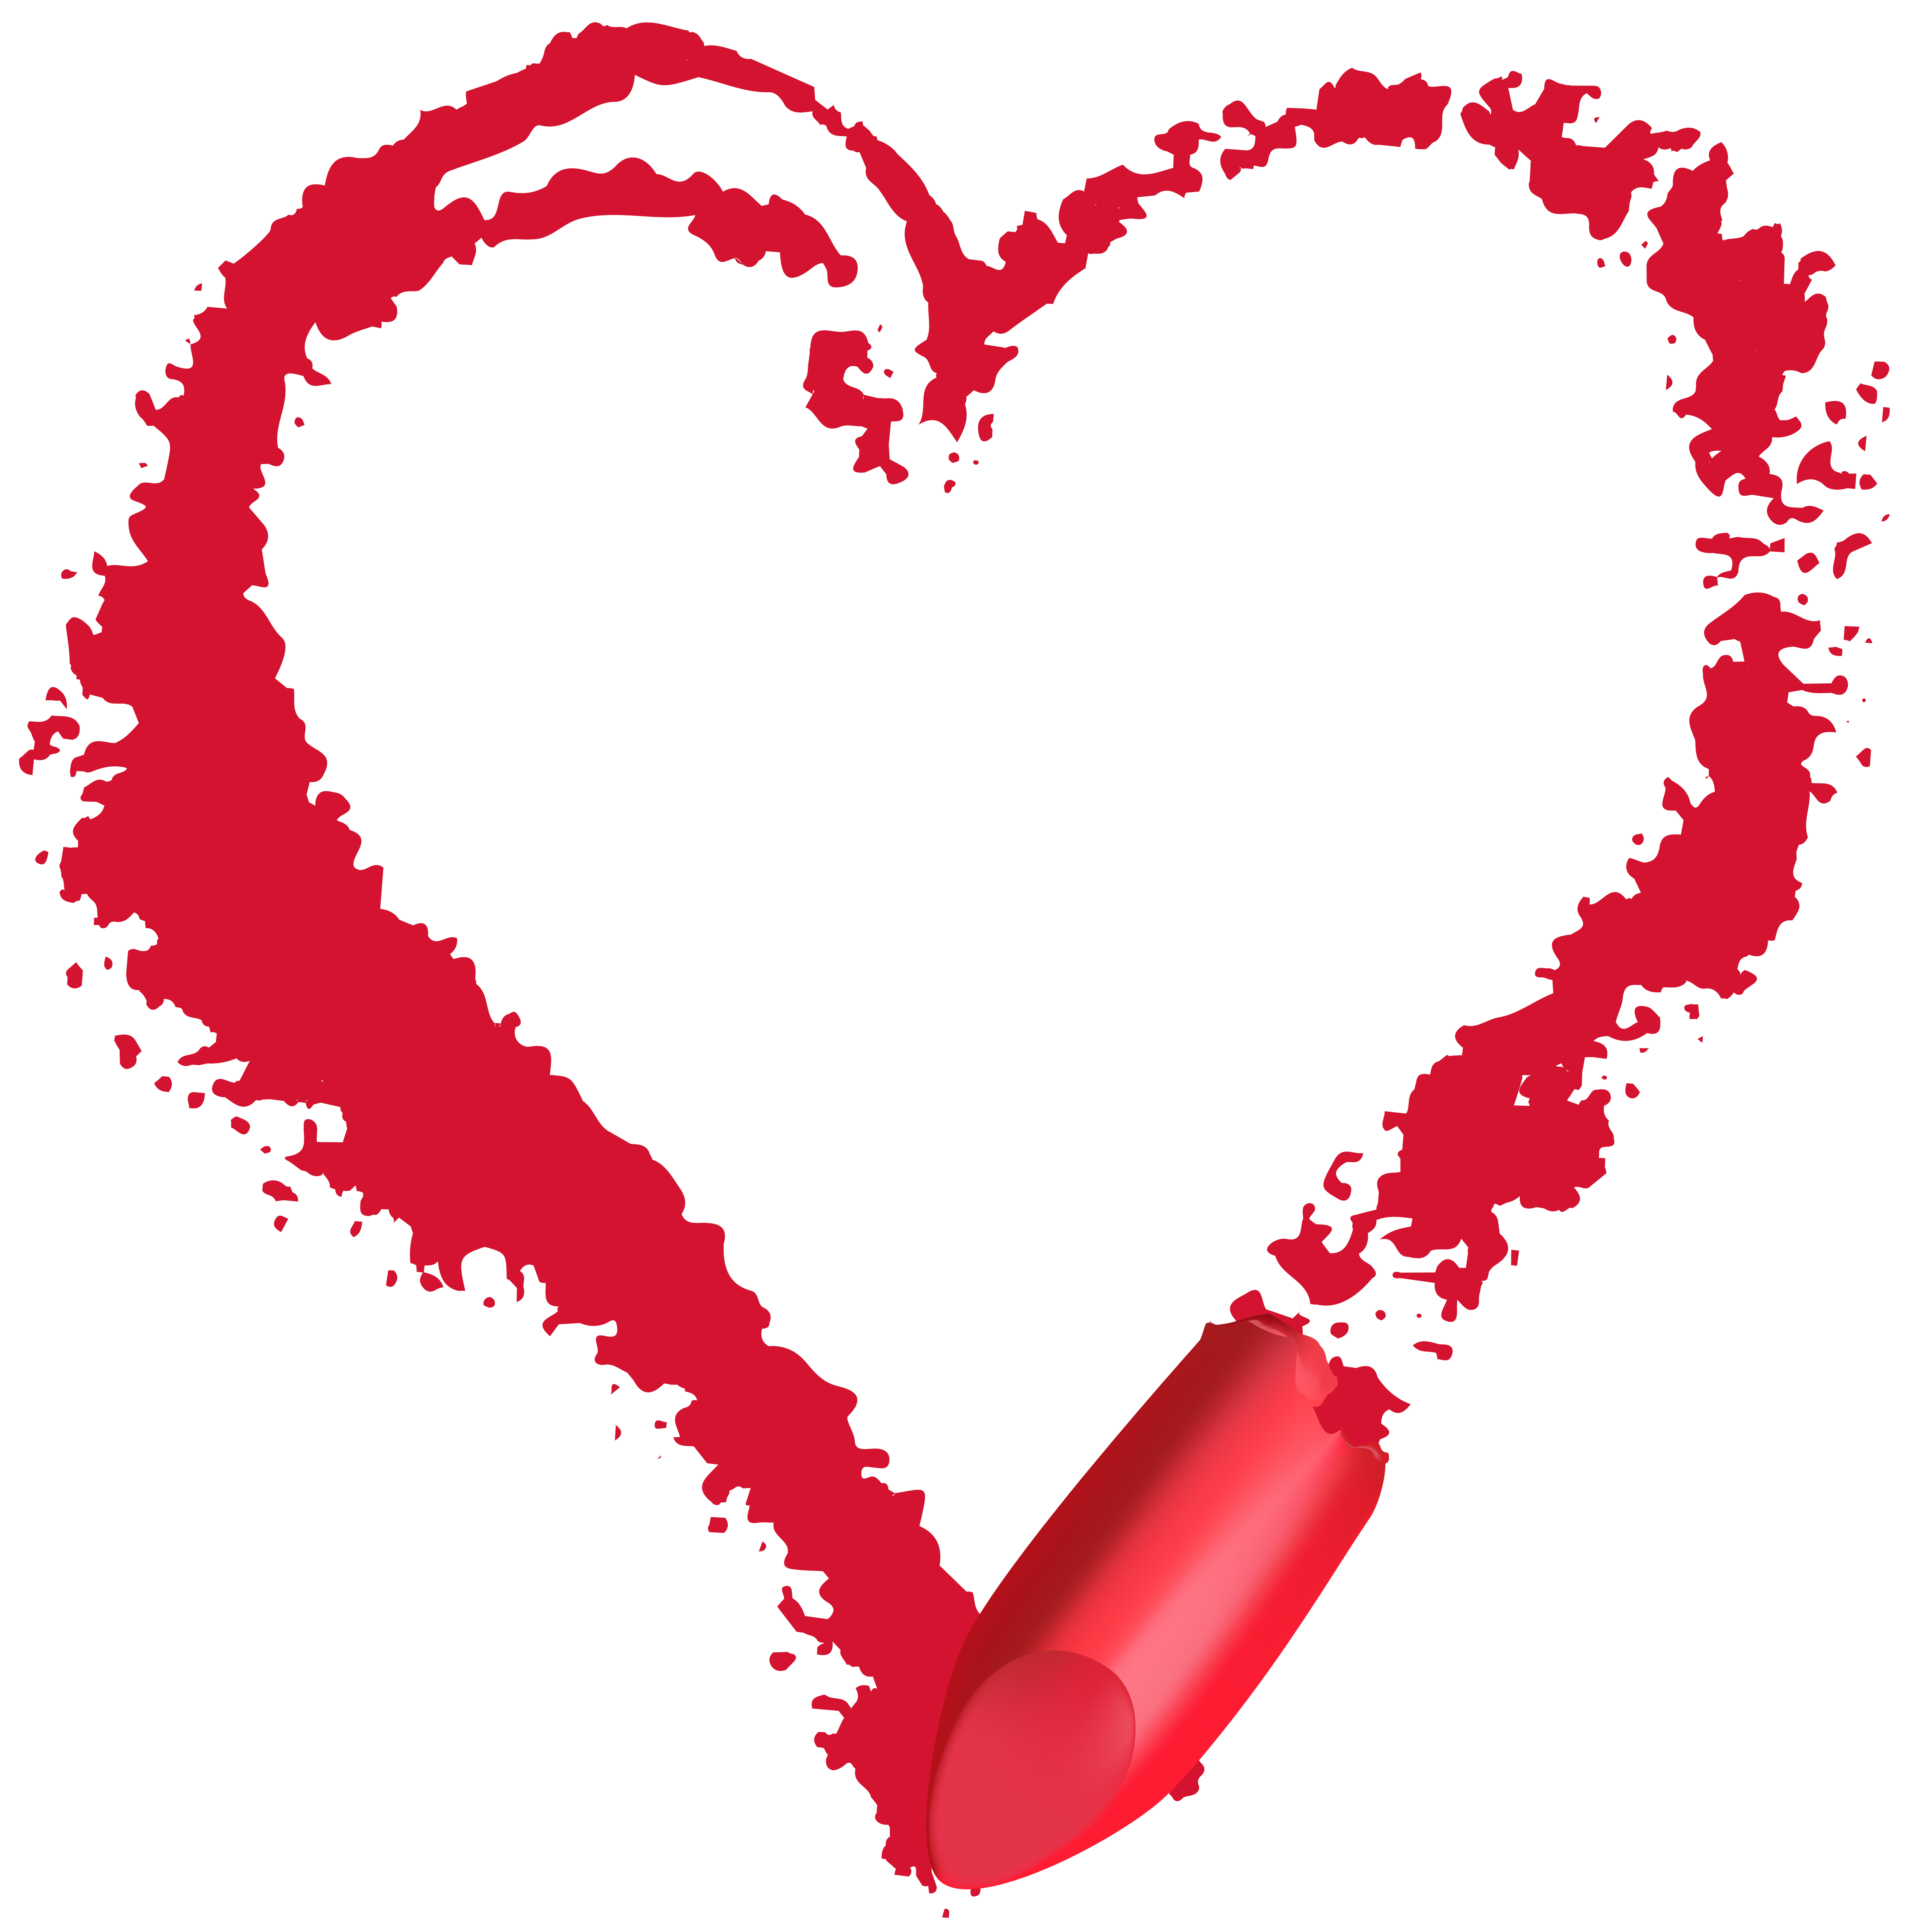 Melting heart clipart clip art transparent Lipstick Clipart at GetDrawings.com | Free for personal use Lipstick ... clip art transparent